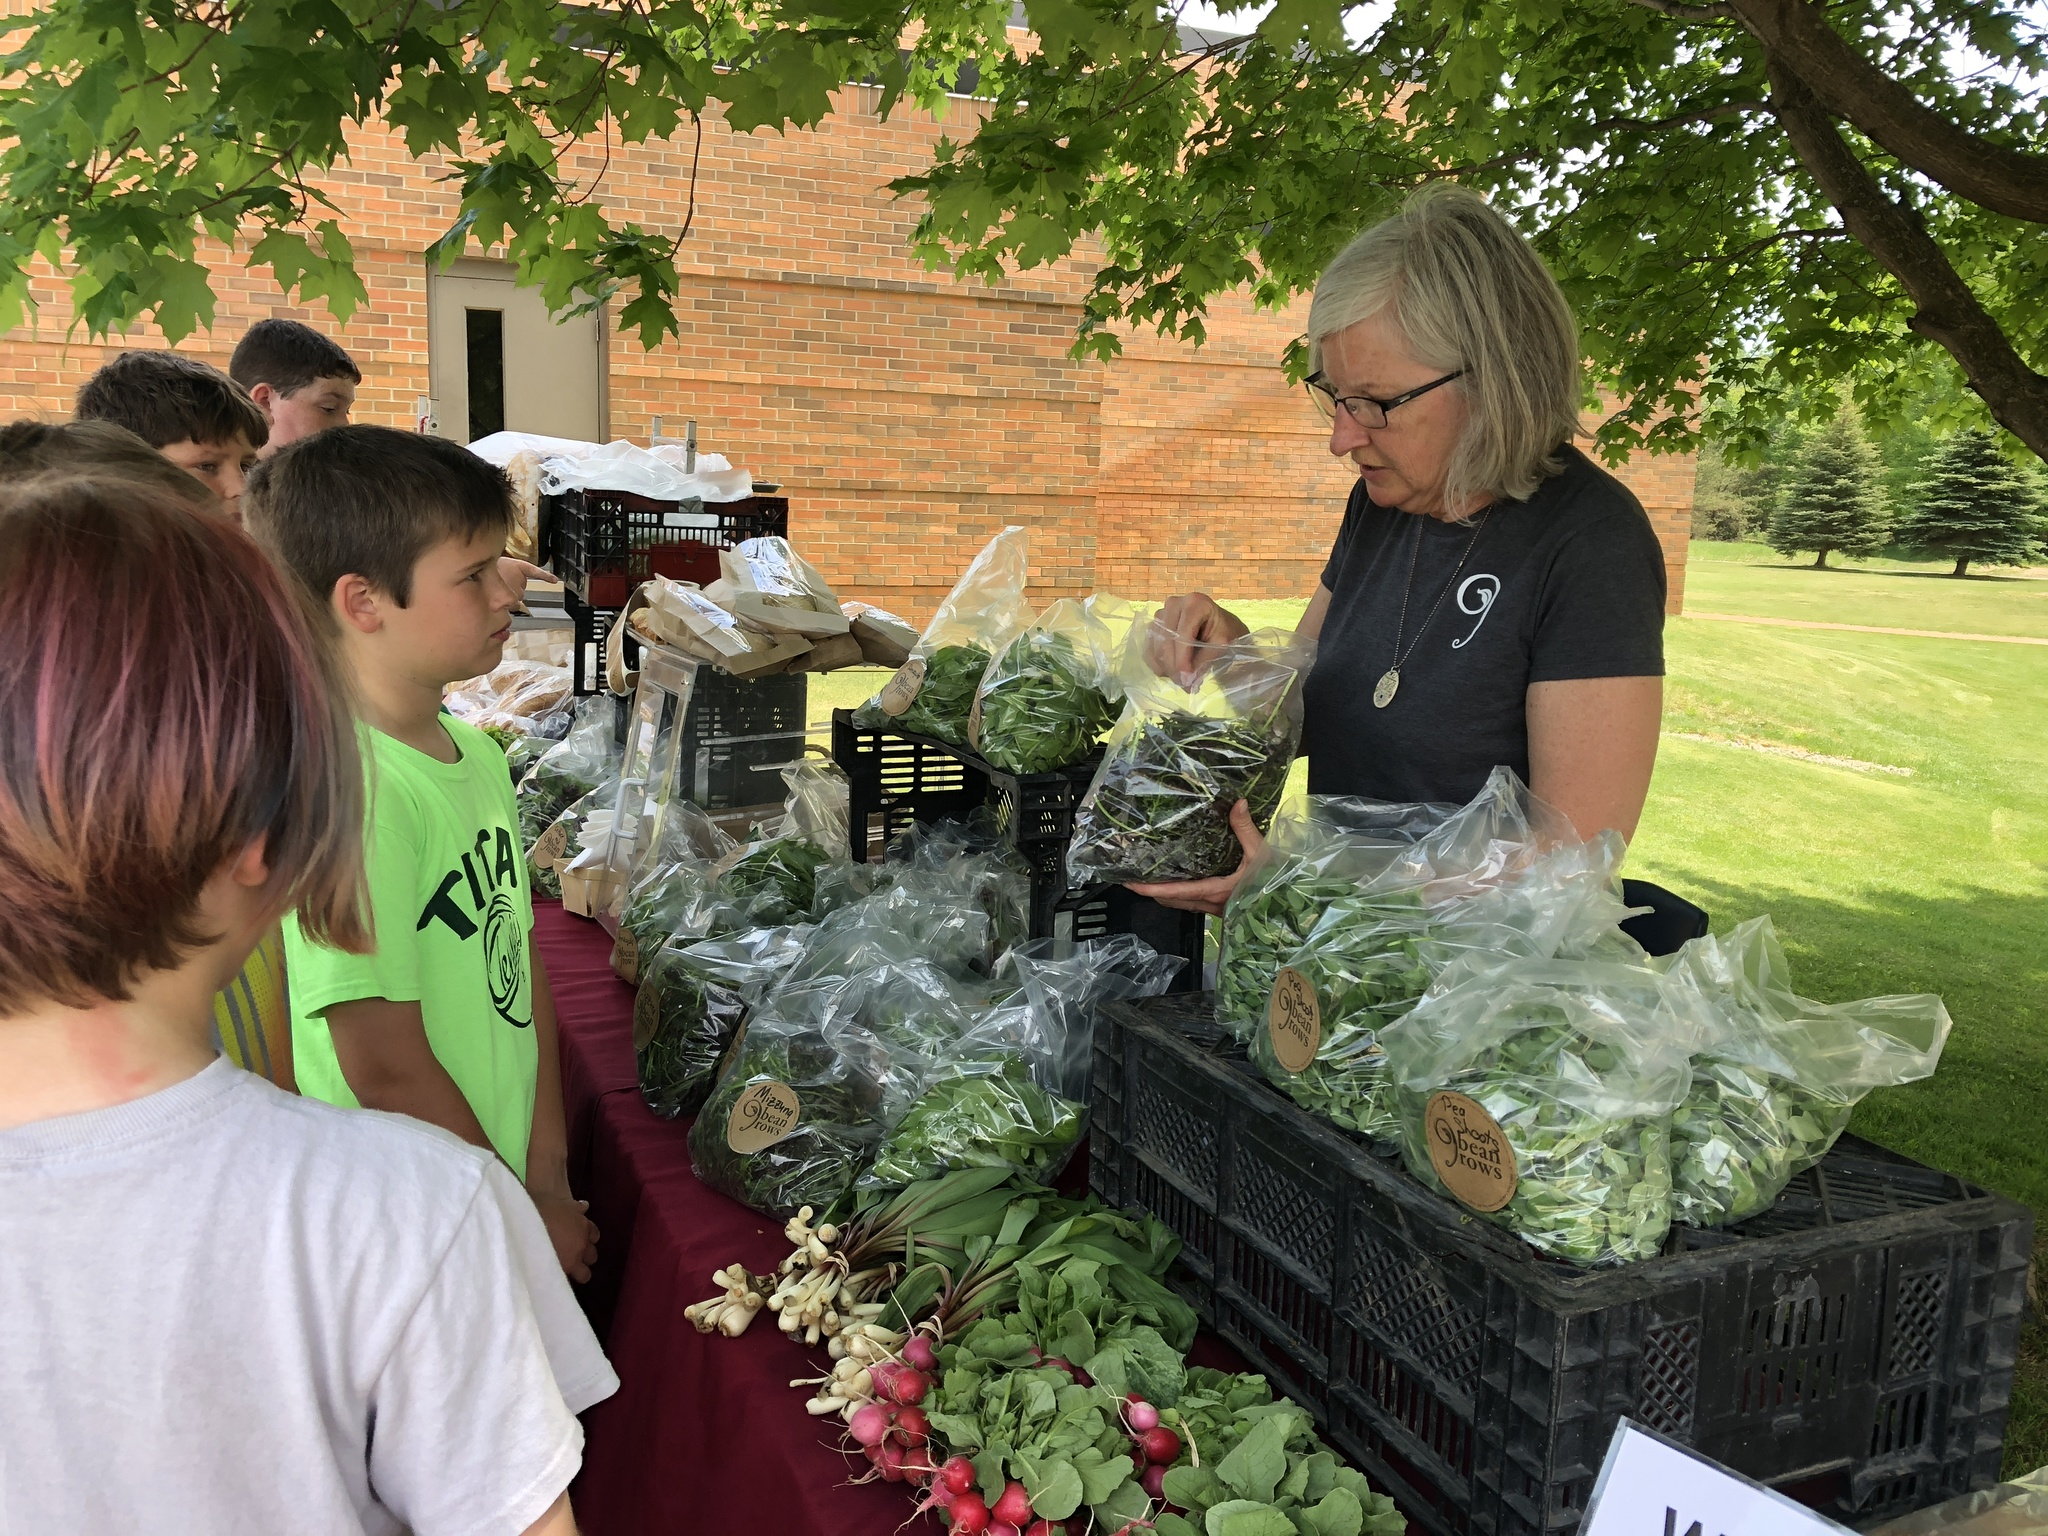 westwoods students looking at lettuce at farmer's market